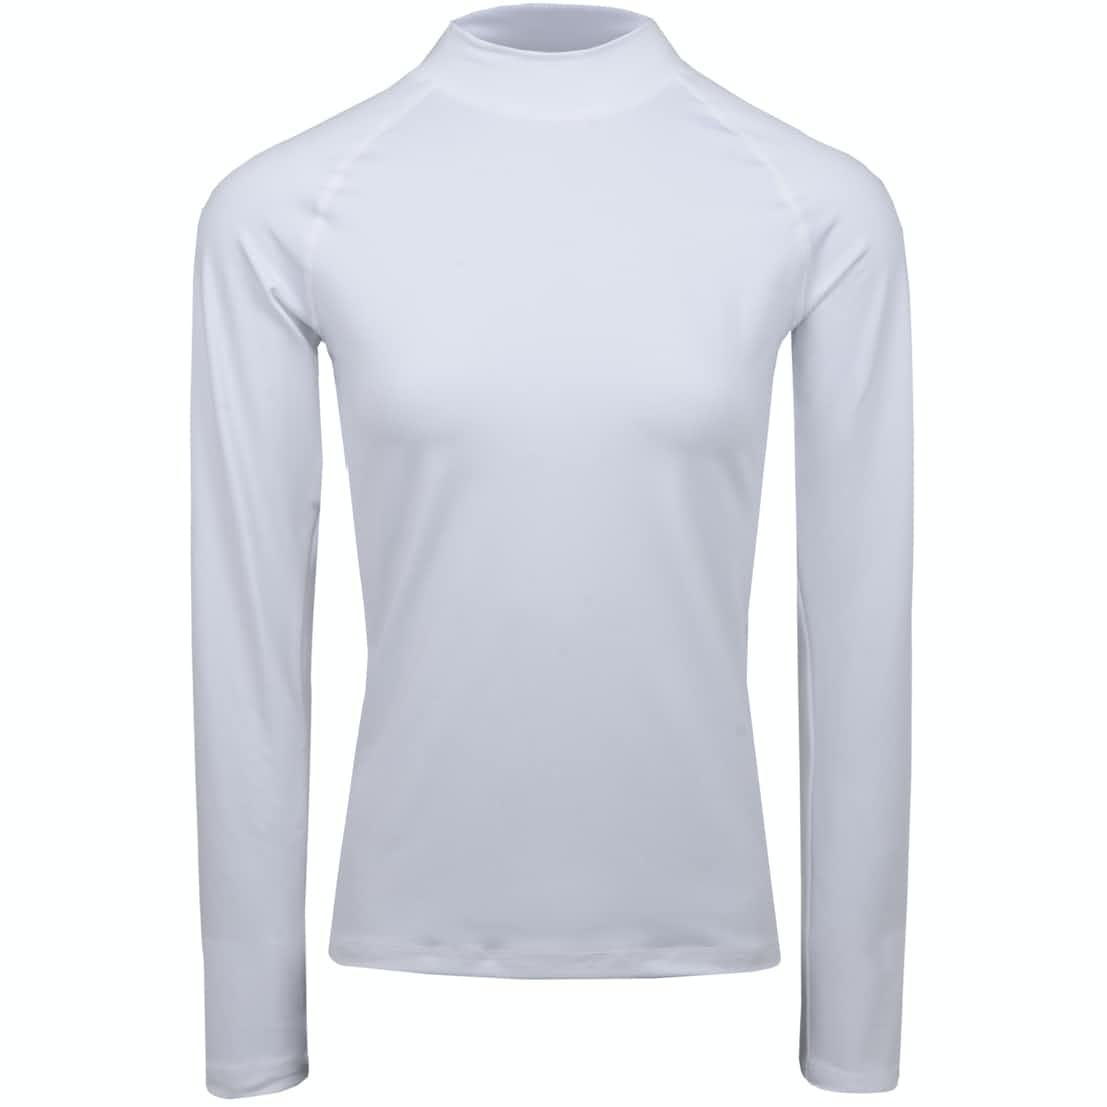 Womens Warm Baselayer Bright White - 2020